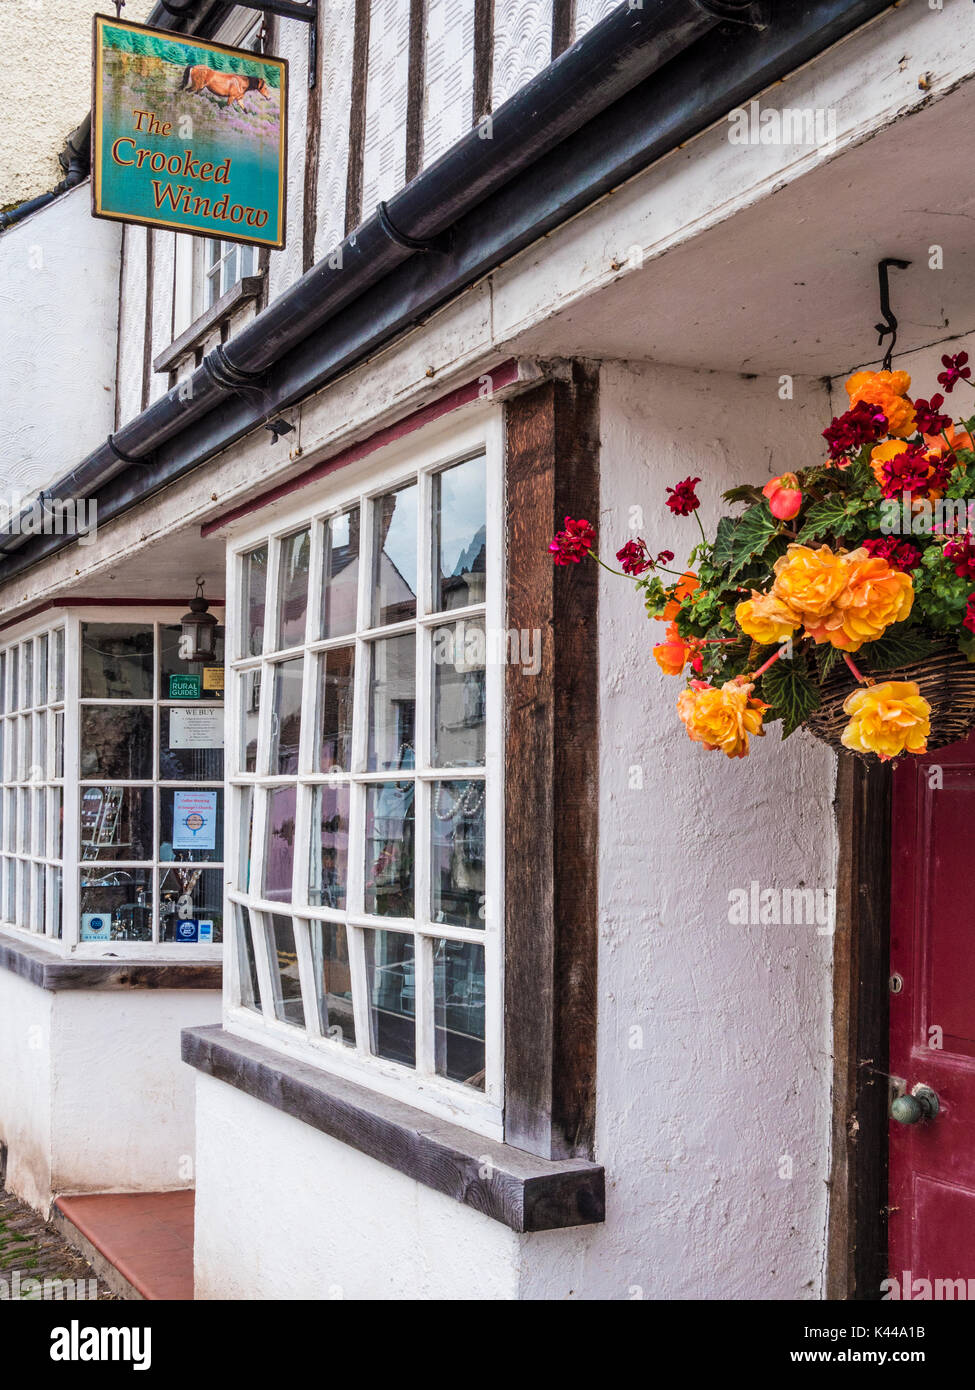 The Crooked Window, an art gallery in Dunster near Minehead, Somerset. - Stock Image